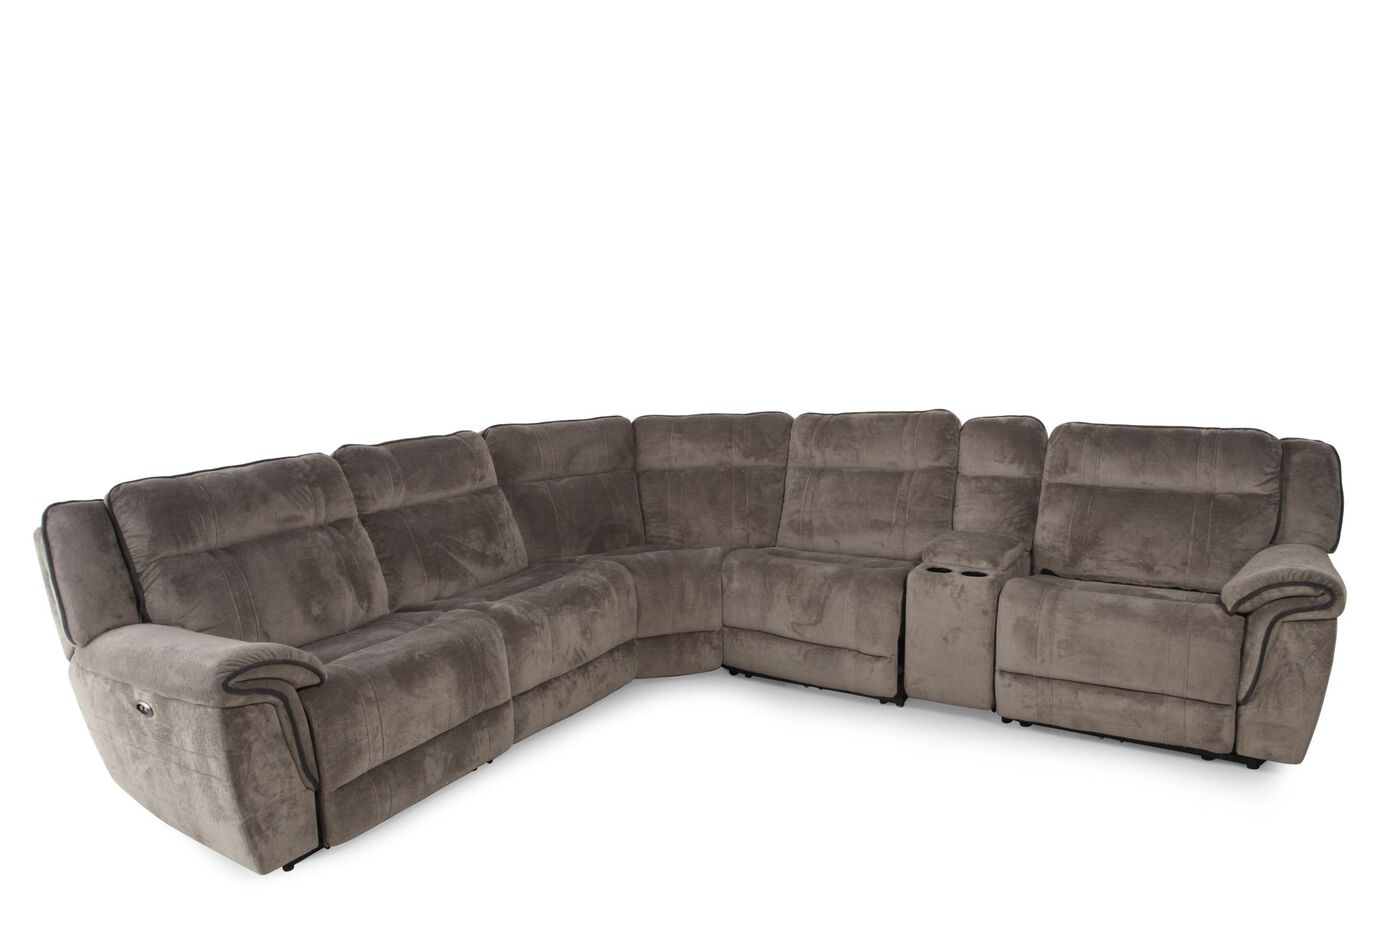 Boulevard Gray Six Piece Power Sectional. Boulevard Gray Six Piece Power Sectional   Mathis Brothers Furniture